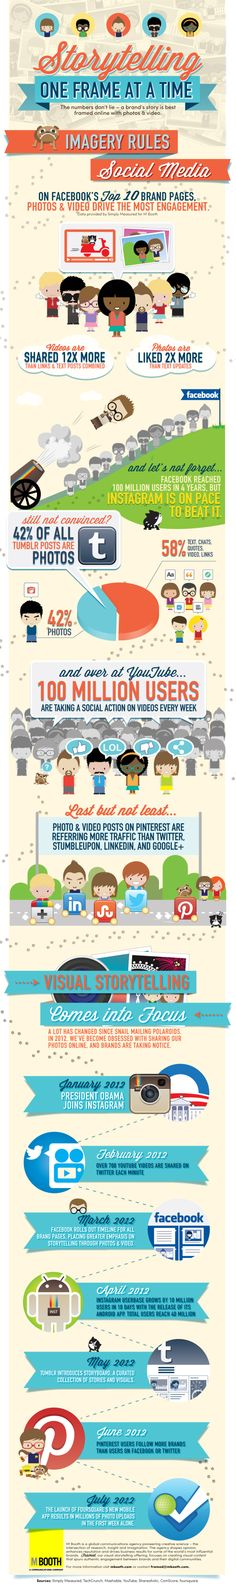 A Collection of the Best Facebook Infographics of 2012 - Photos Drive the Most Engagement on Facebook